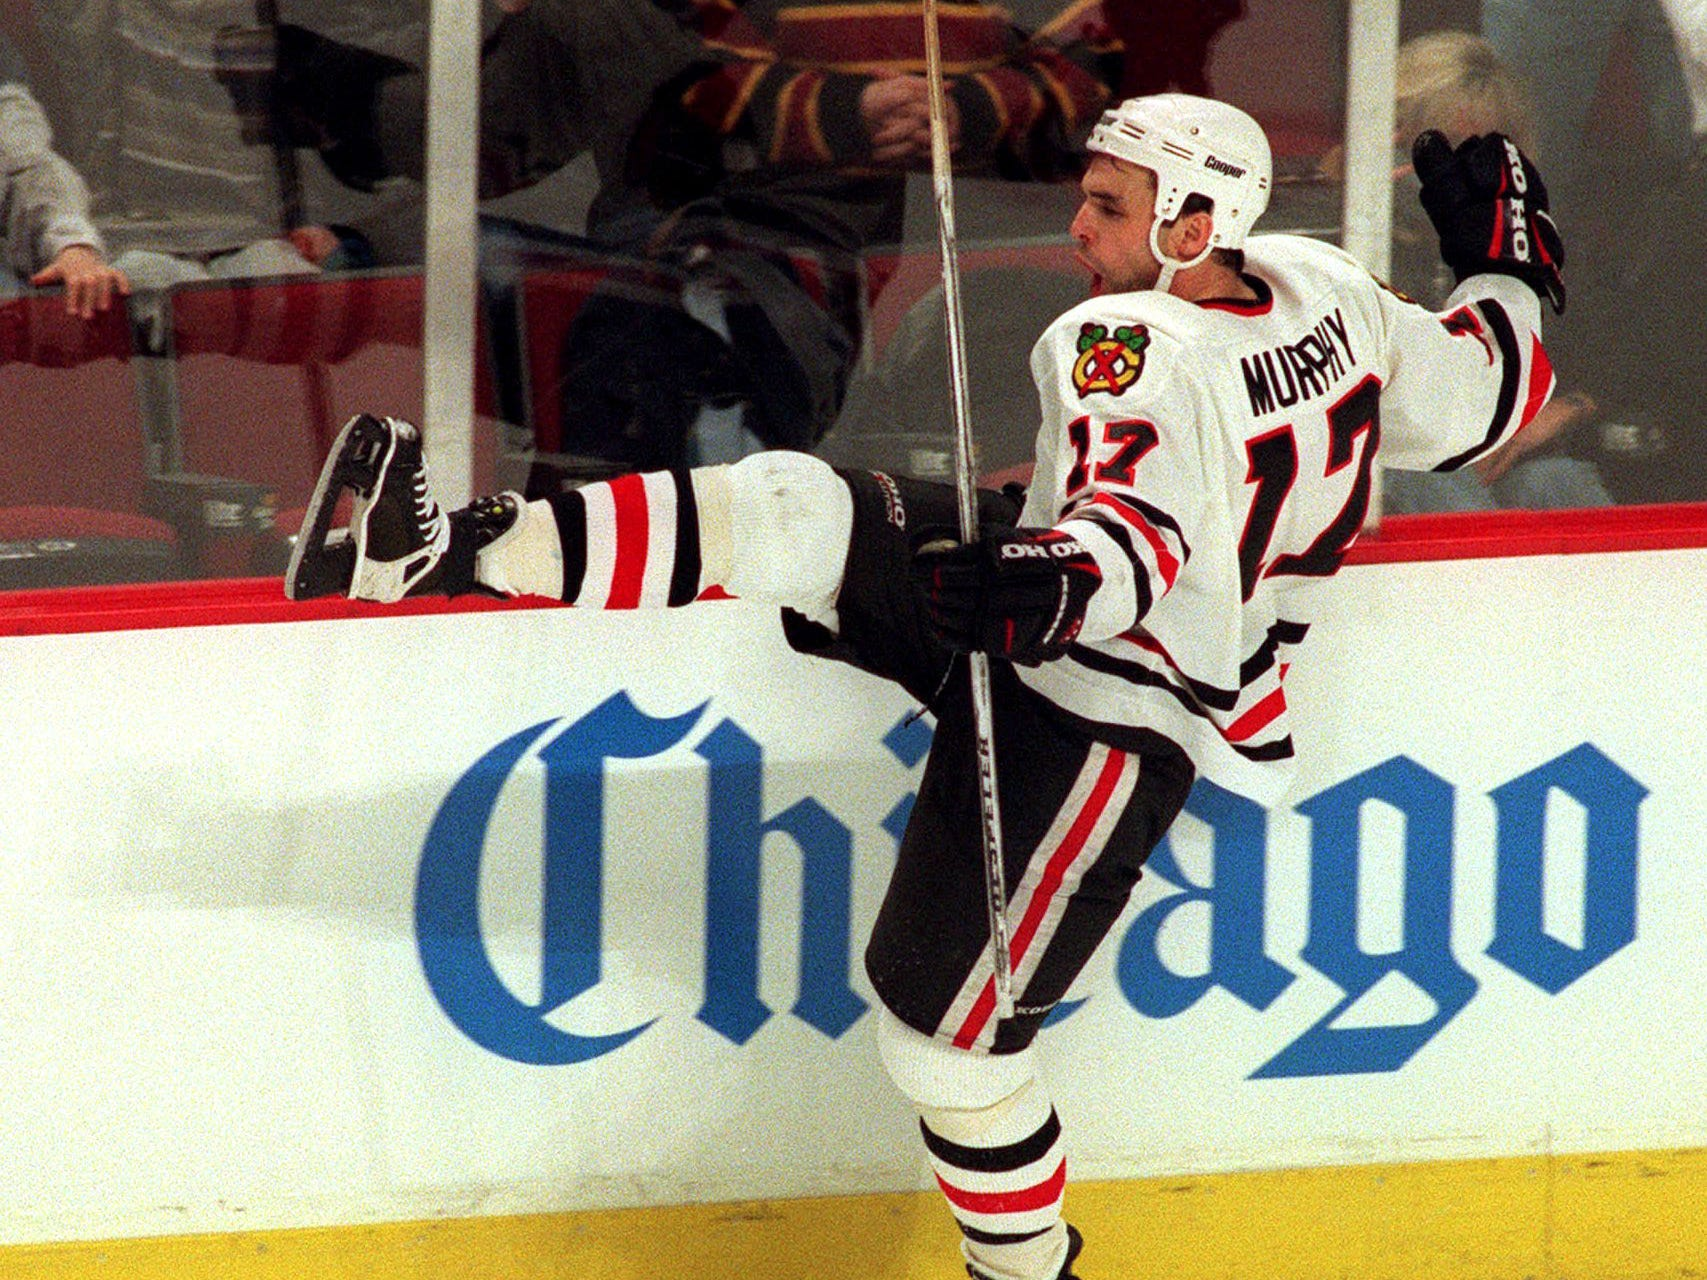 Chicago Blackhawks' Joe Murphy celebrates a second-period goal against the Florida Panthers on Monday, March 11, 1996, in Chicago. The Blackhawks snapped a four-game losing streak, beating the Panthers 8-4.